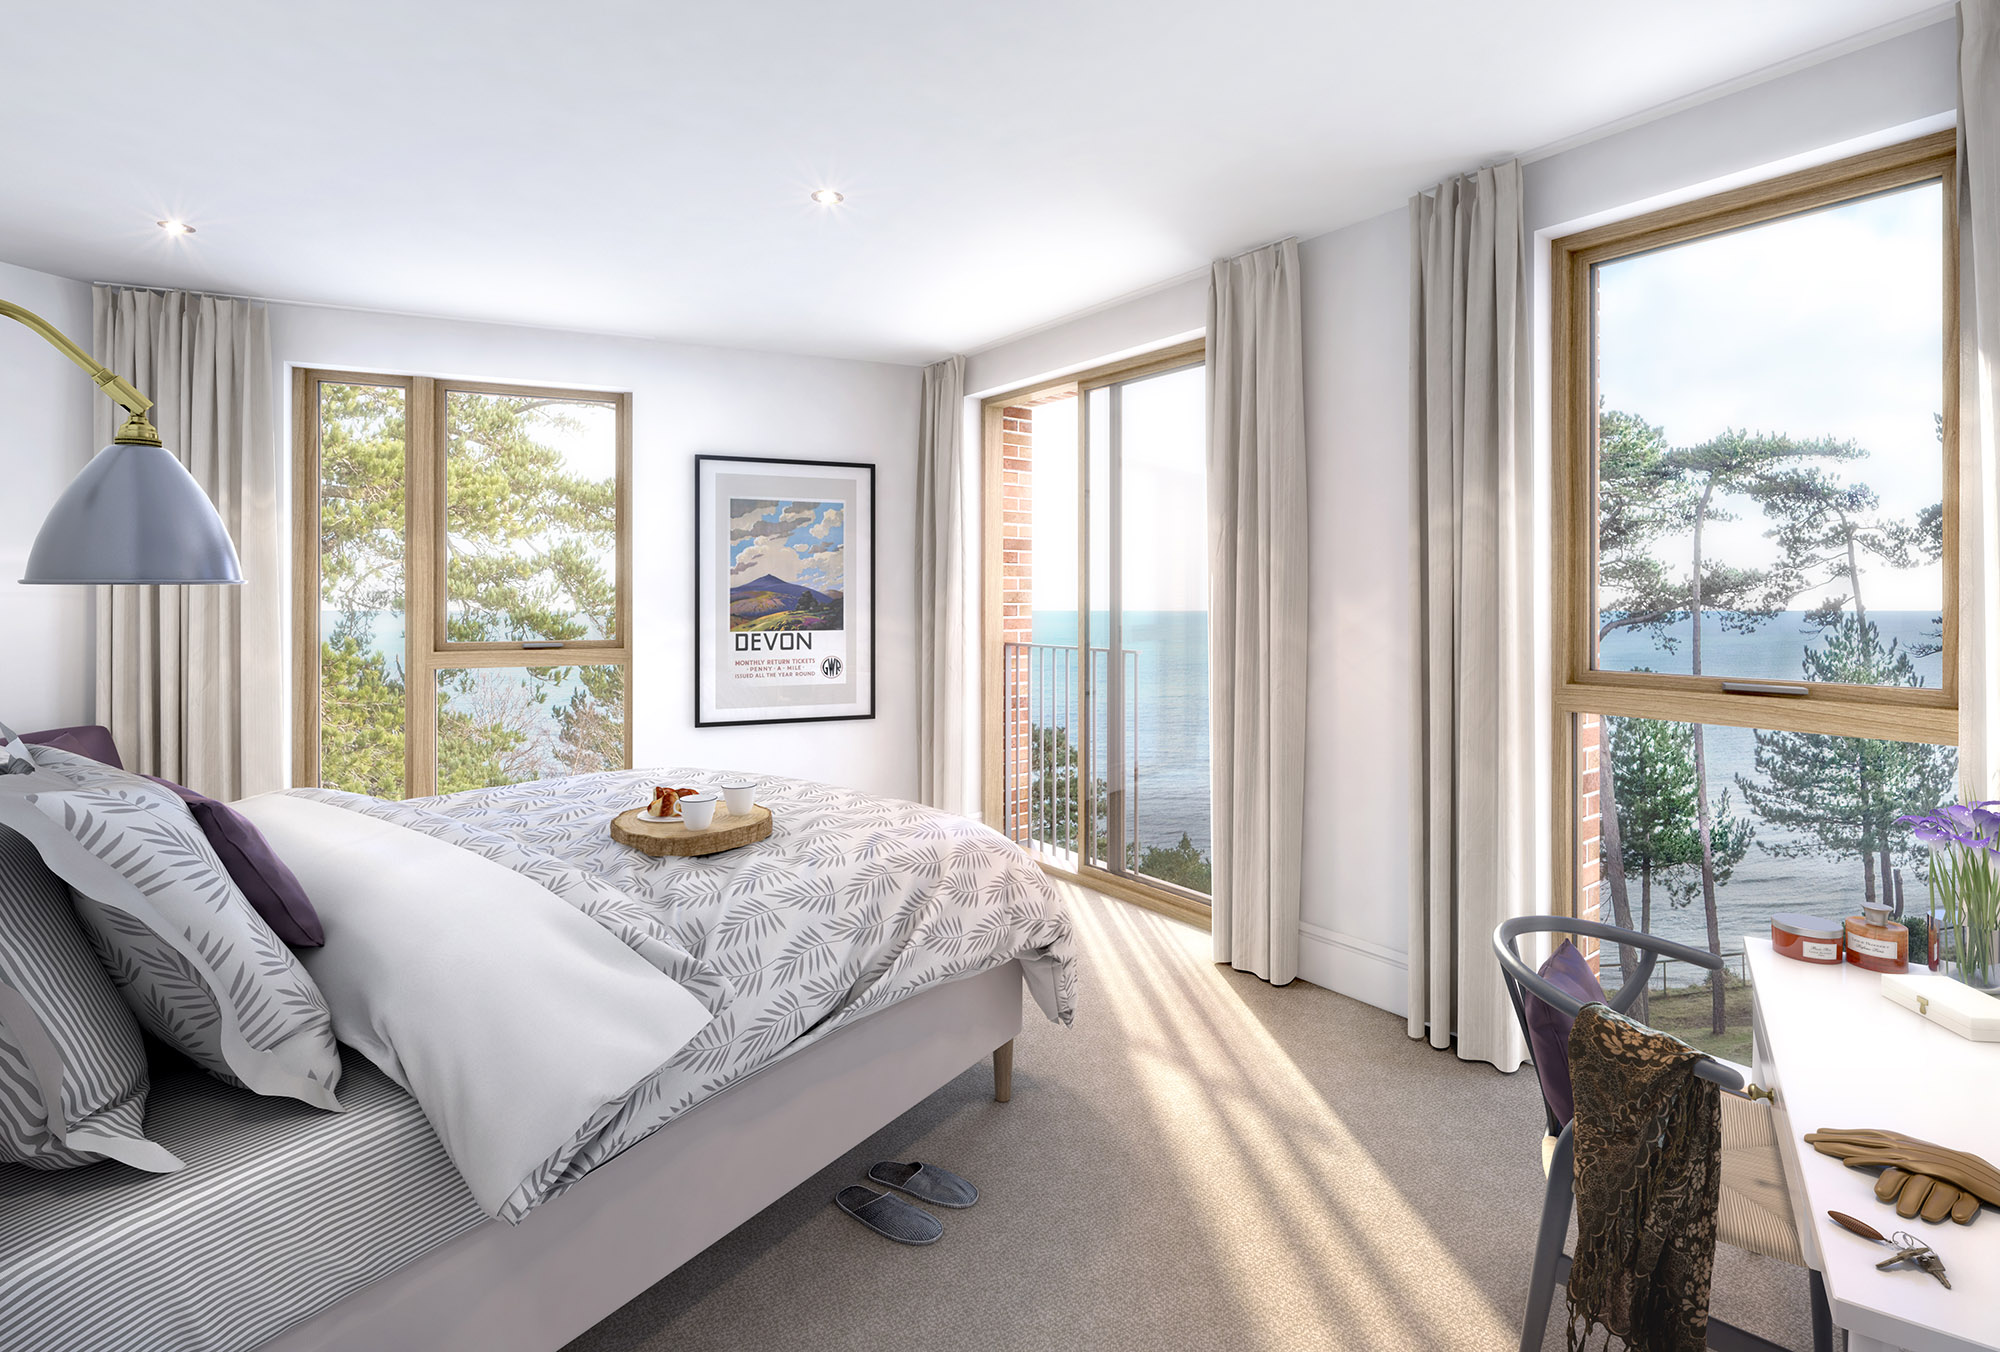 luxury-retirement-cgi-interior-bedroom.jpg